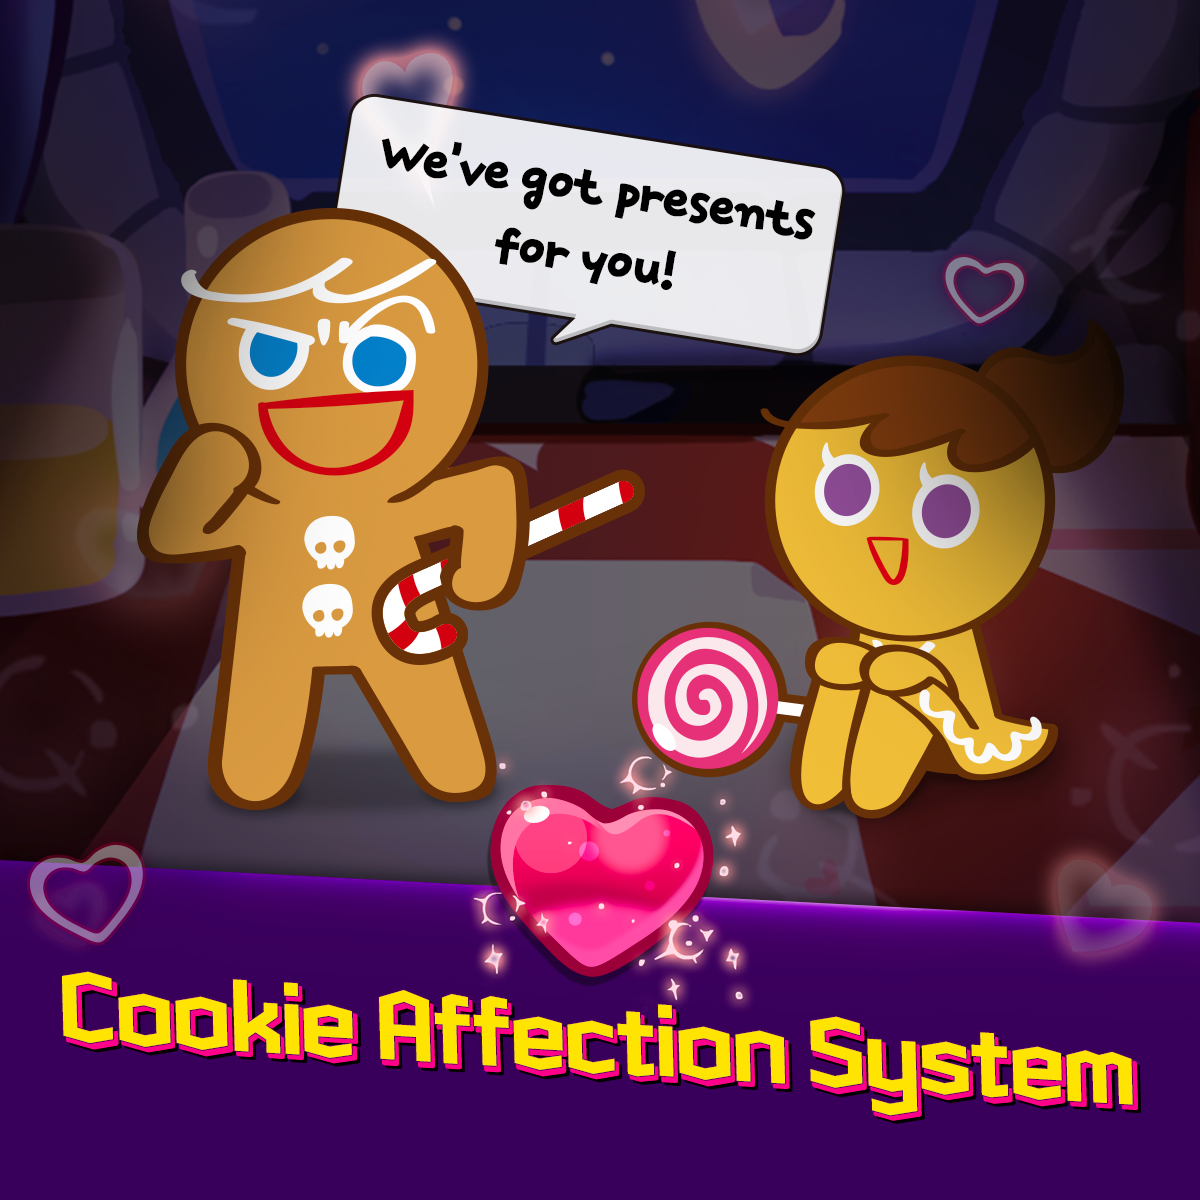 New Cookie Affection System Lobby Renewal